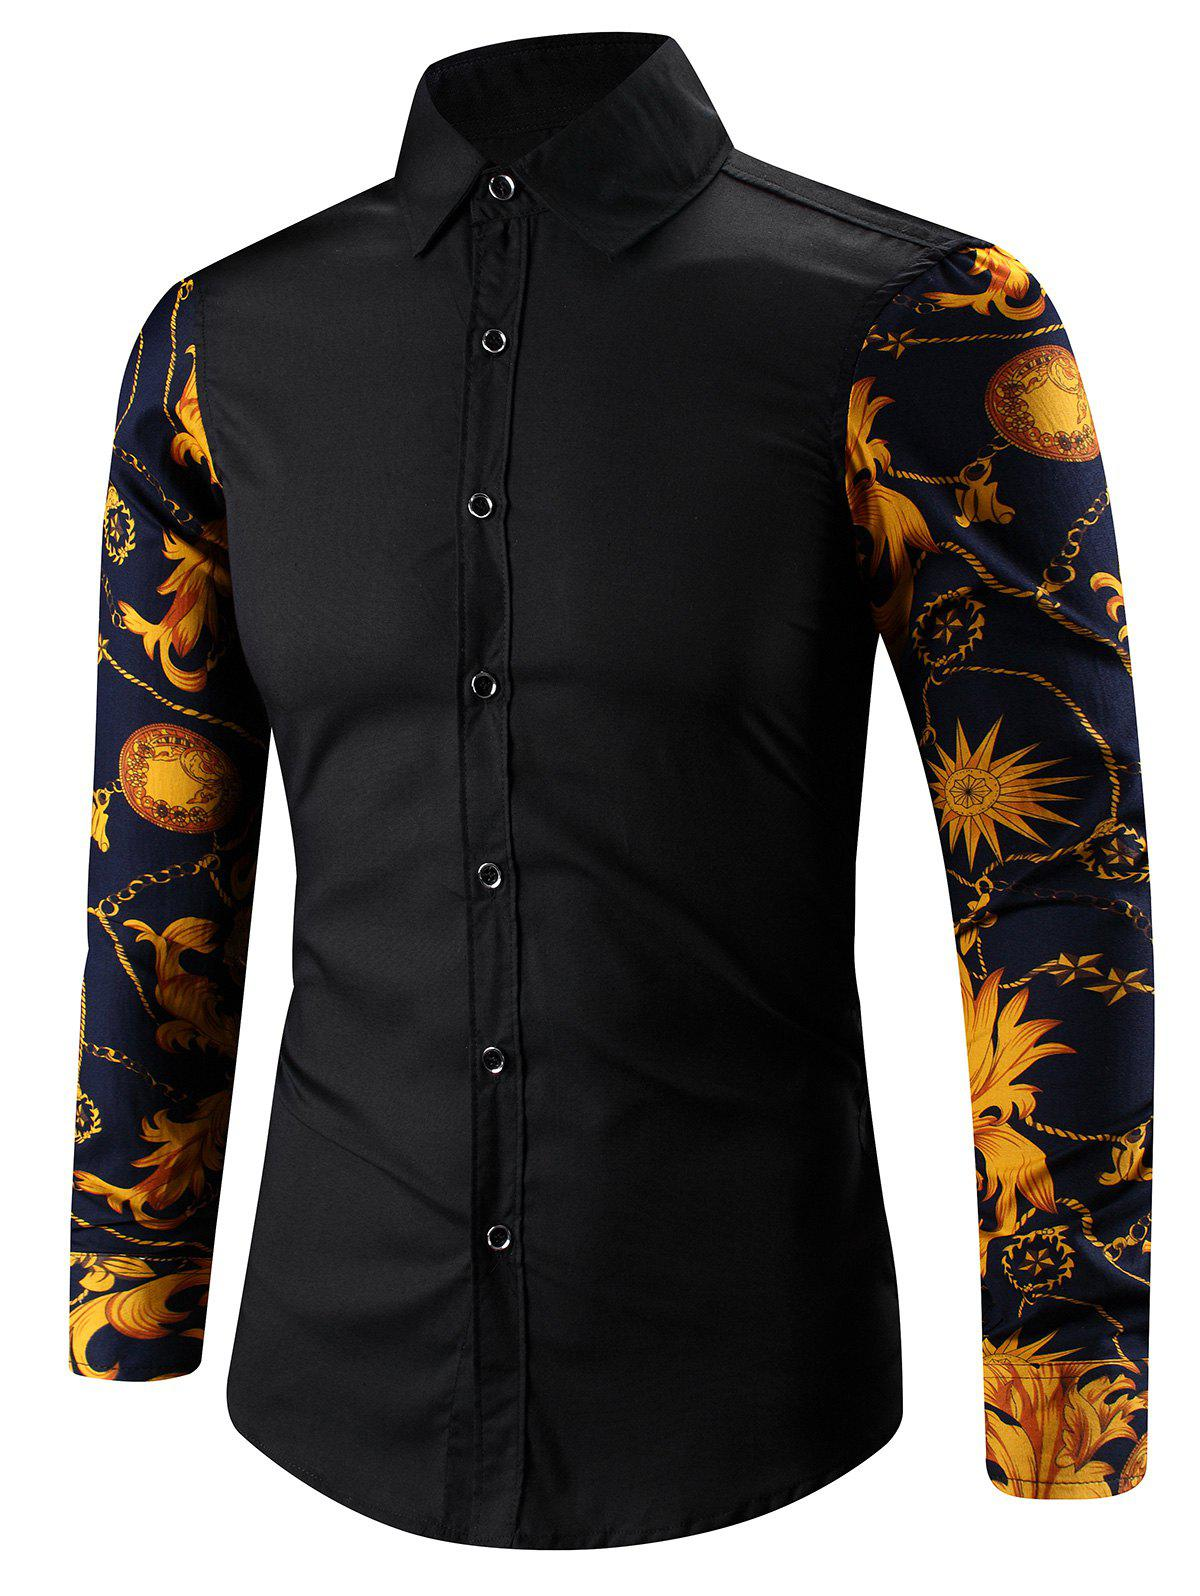 3D Abstract Floral Impression Épissage Tour-Vers Le Bas Collier Chemise - Noir 5XL